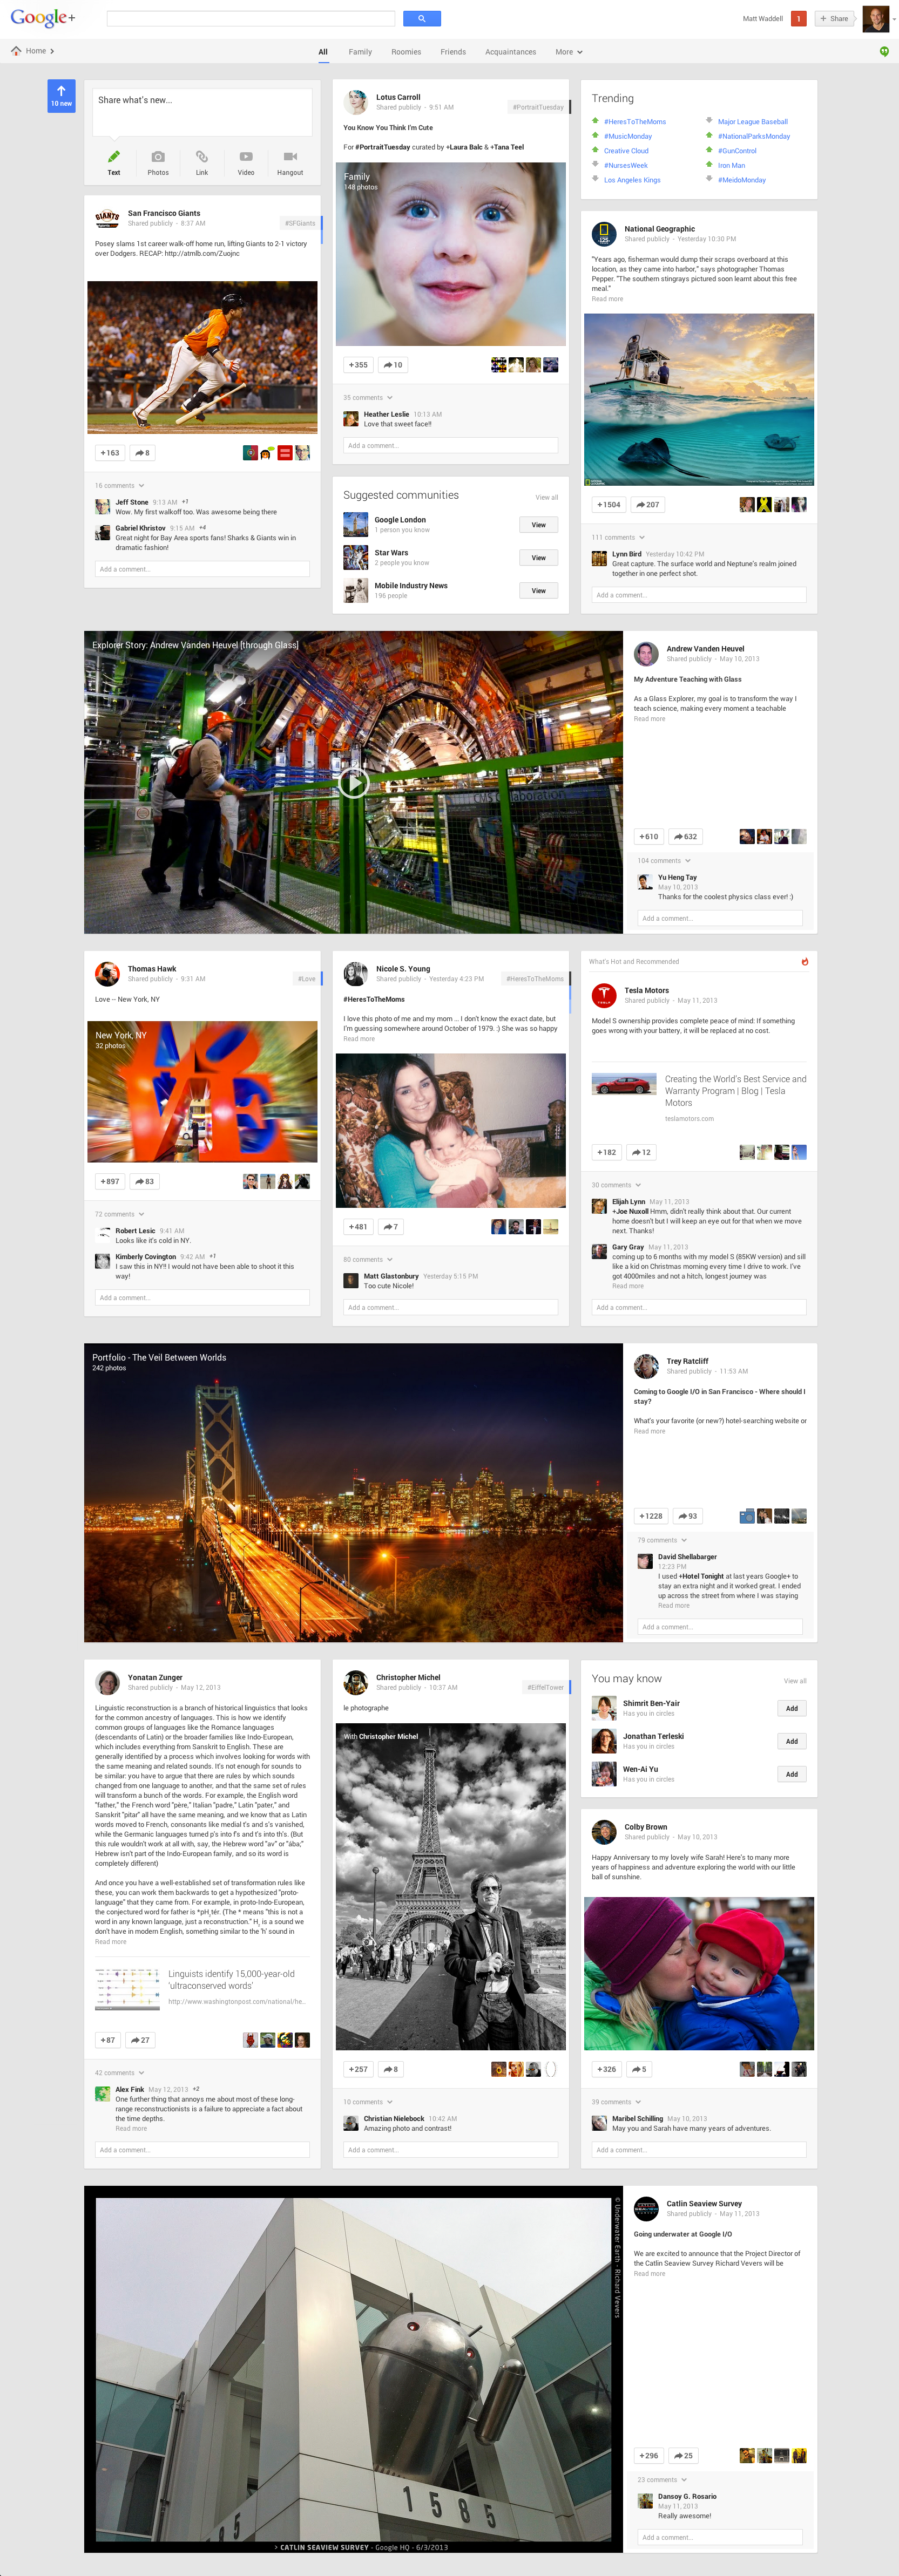 New look for Google+ Stream